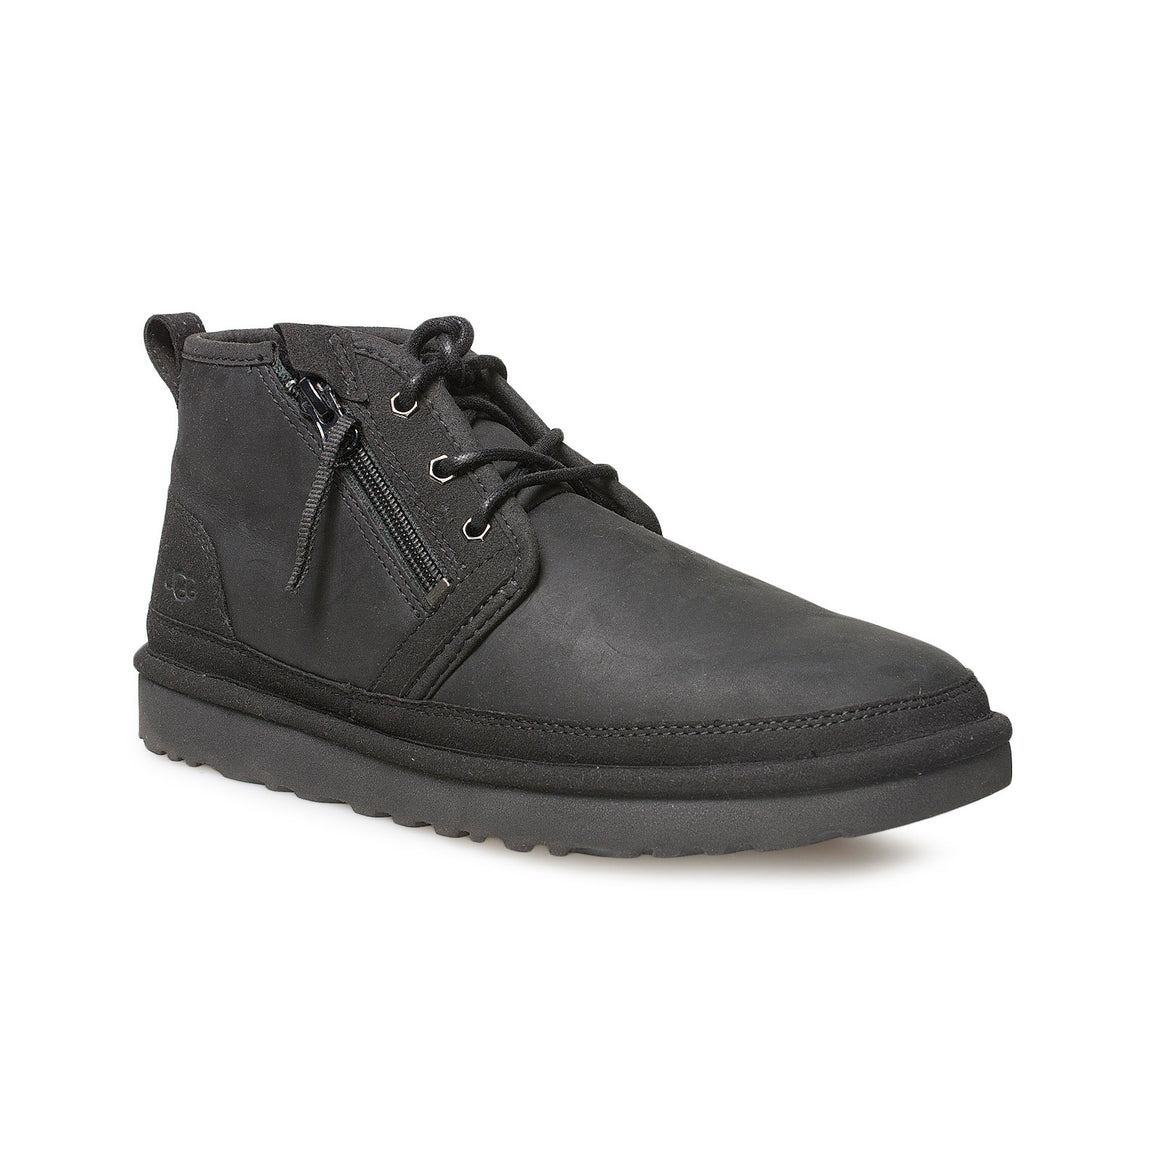 UGG Neumel Zip Black TNL Boots - Men's